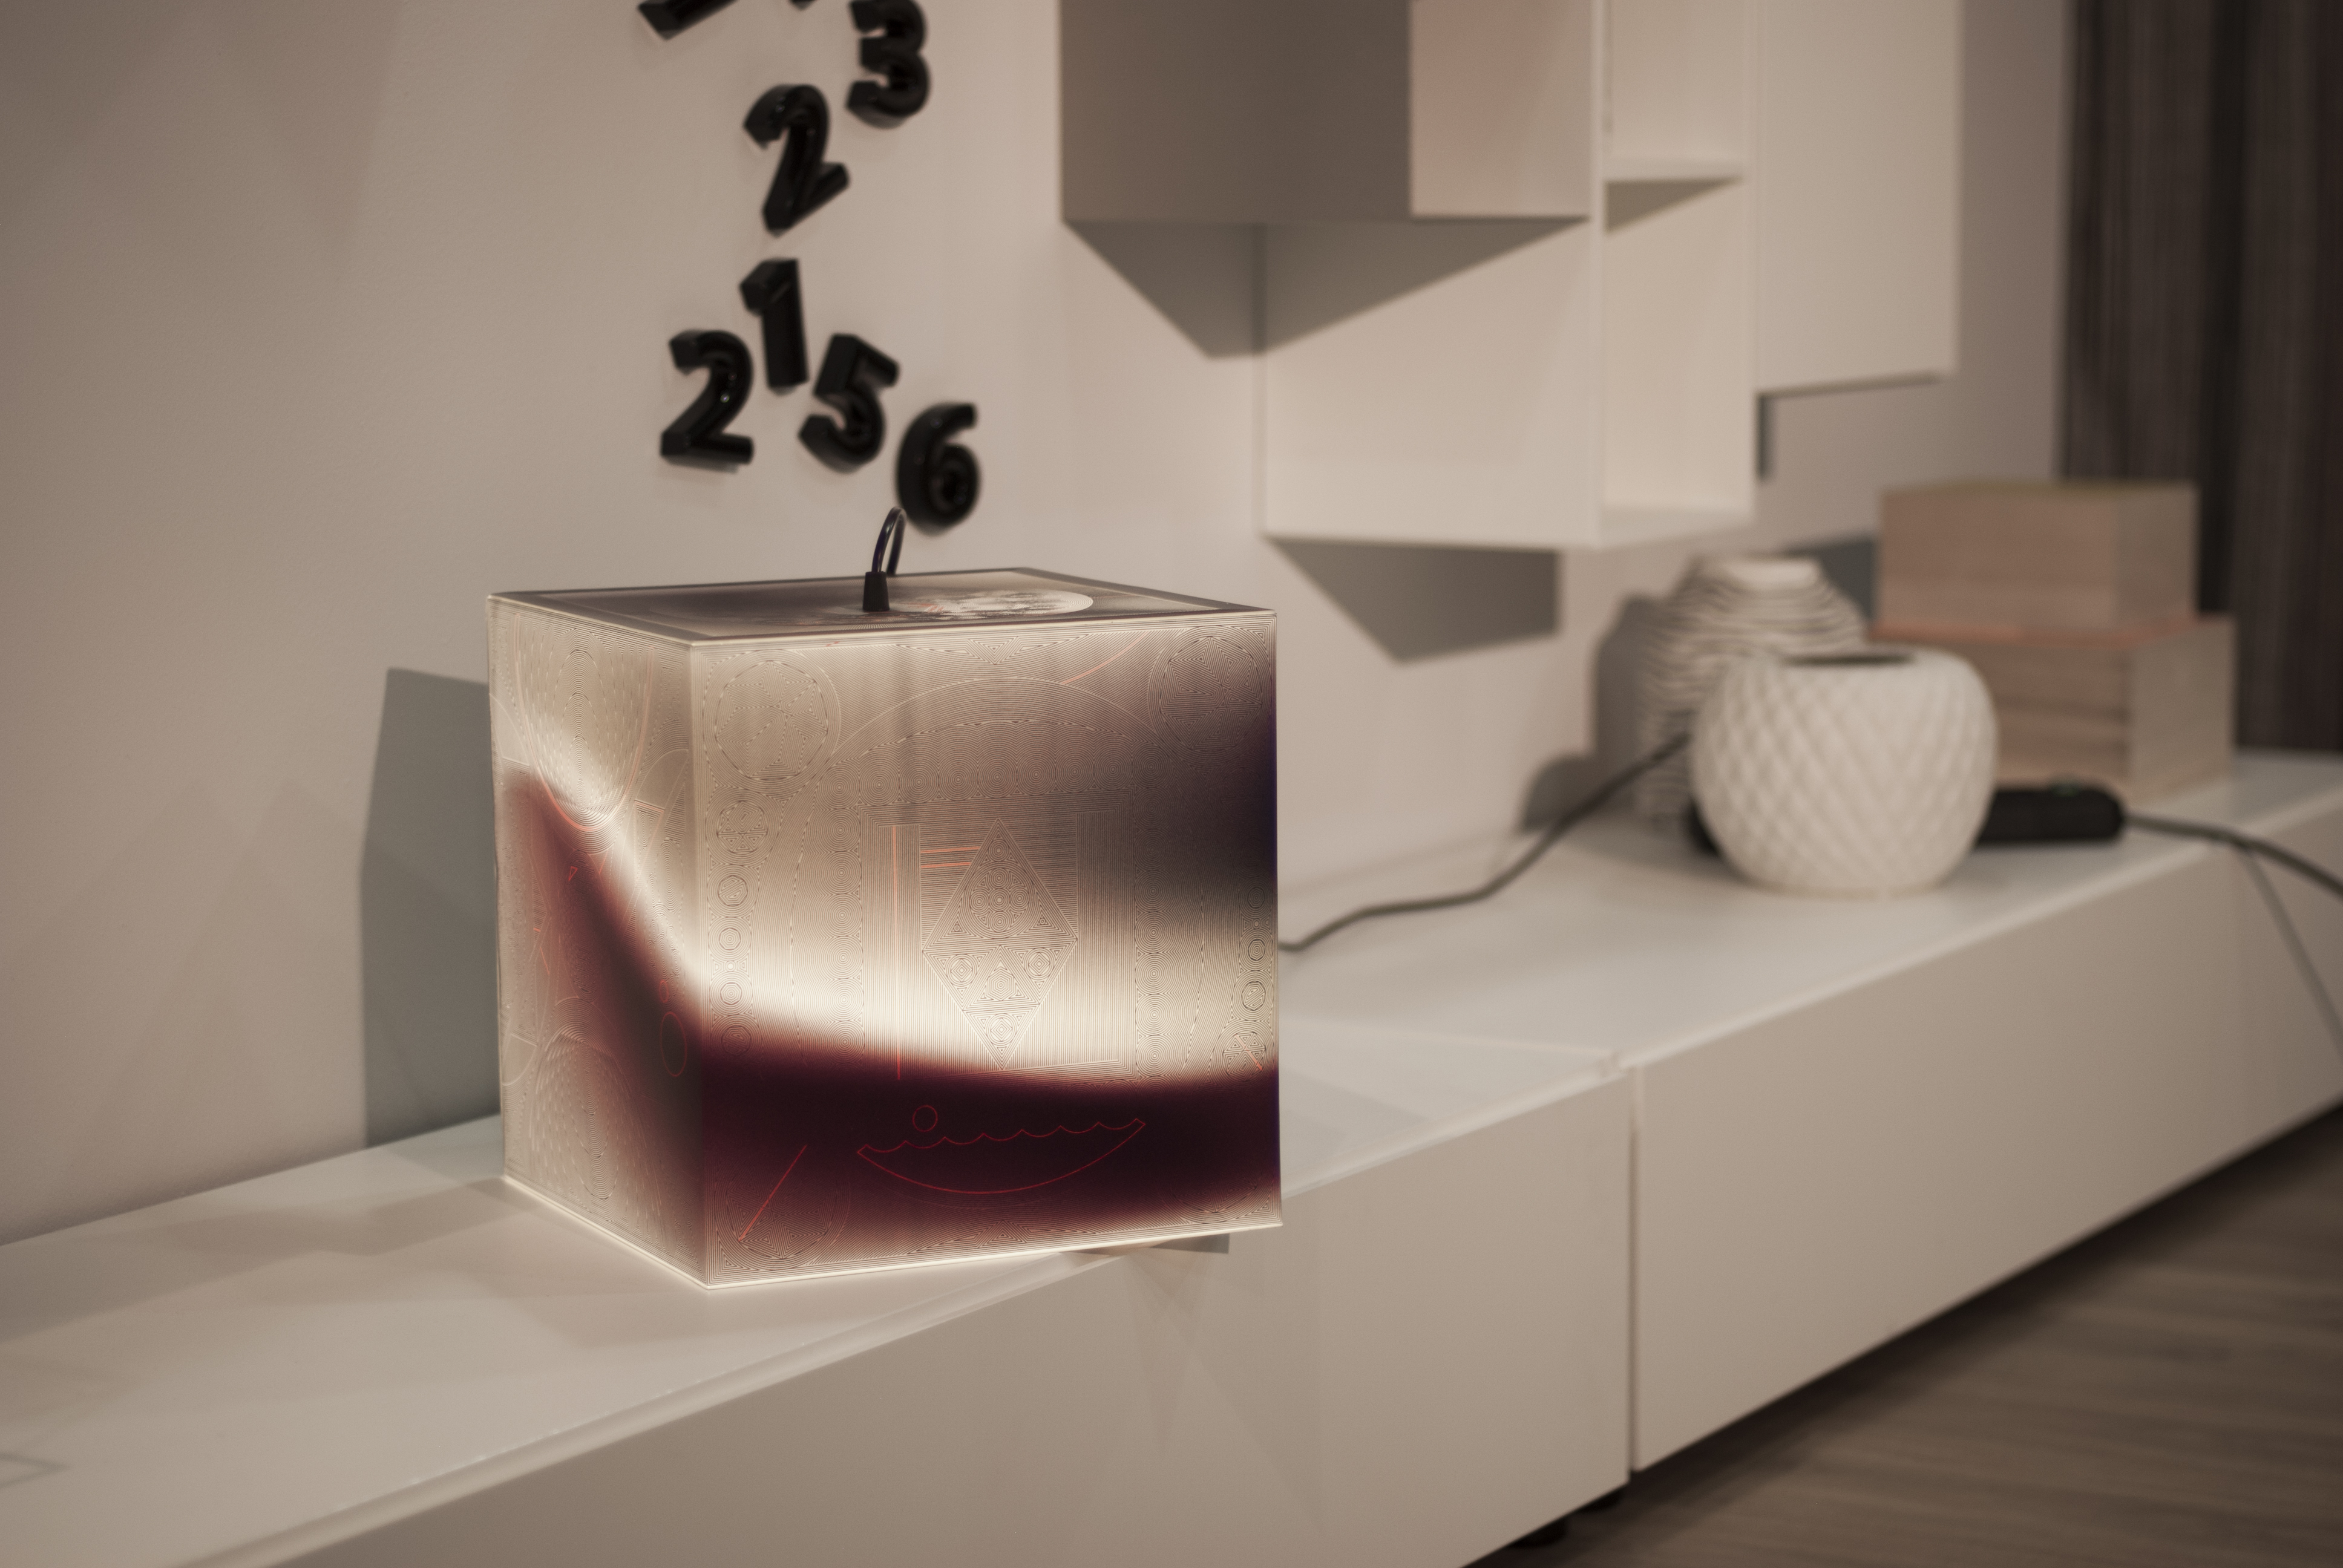 Will Fit In Any Interrior Light Up Your Night Ambient Cube Lamp On A Shelf